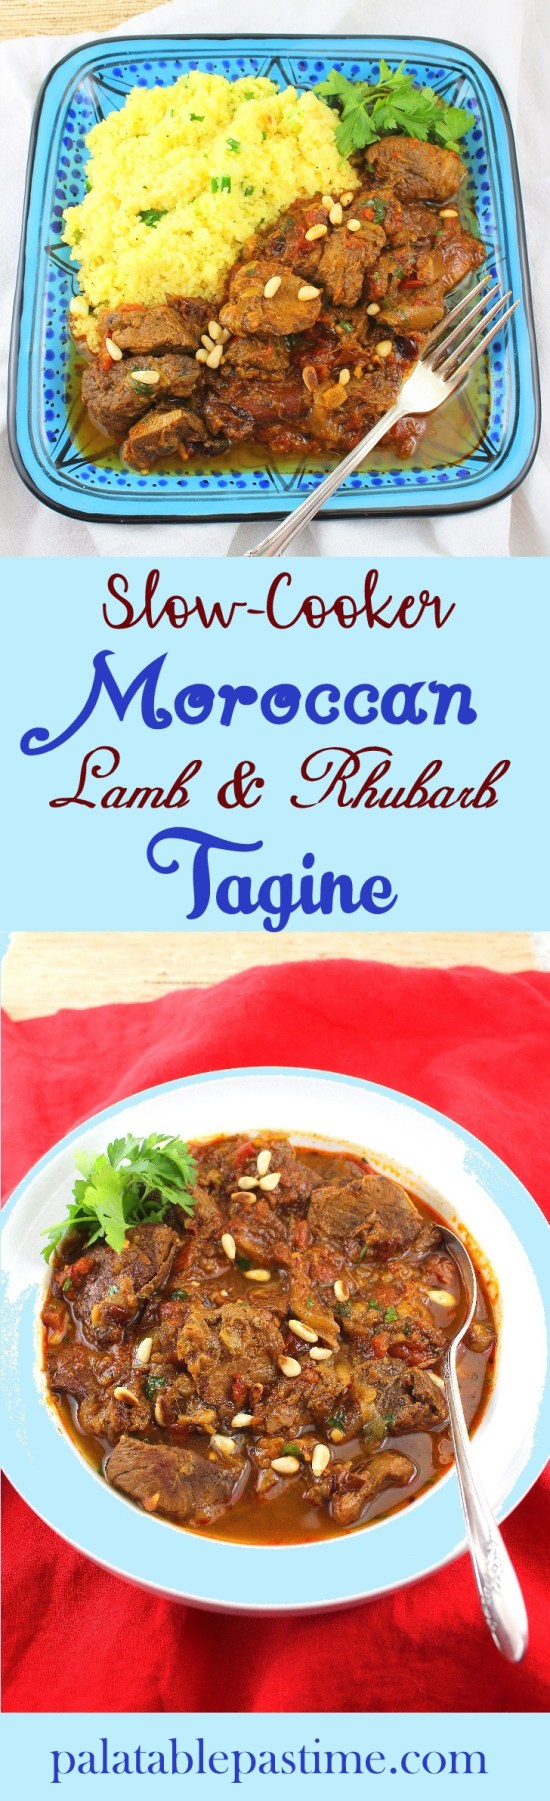 Slow-Cooker Lamb and Rhubarb Tagine